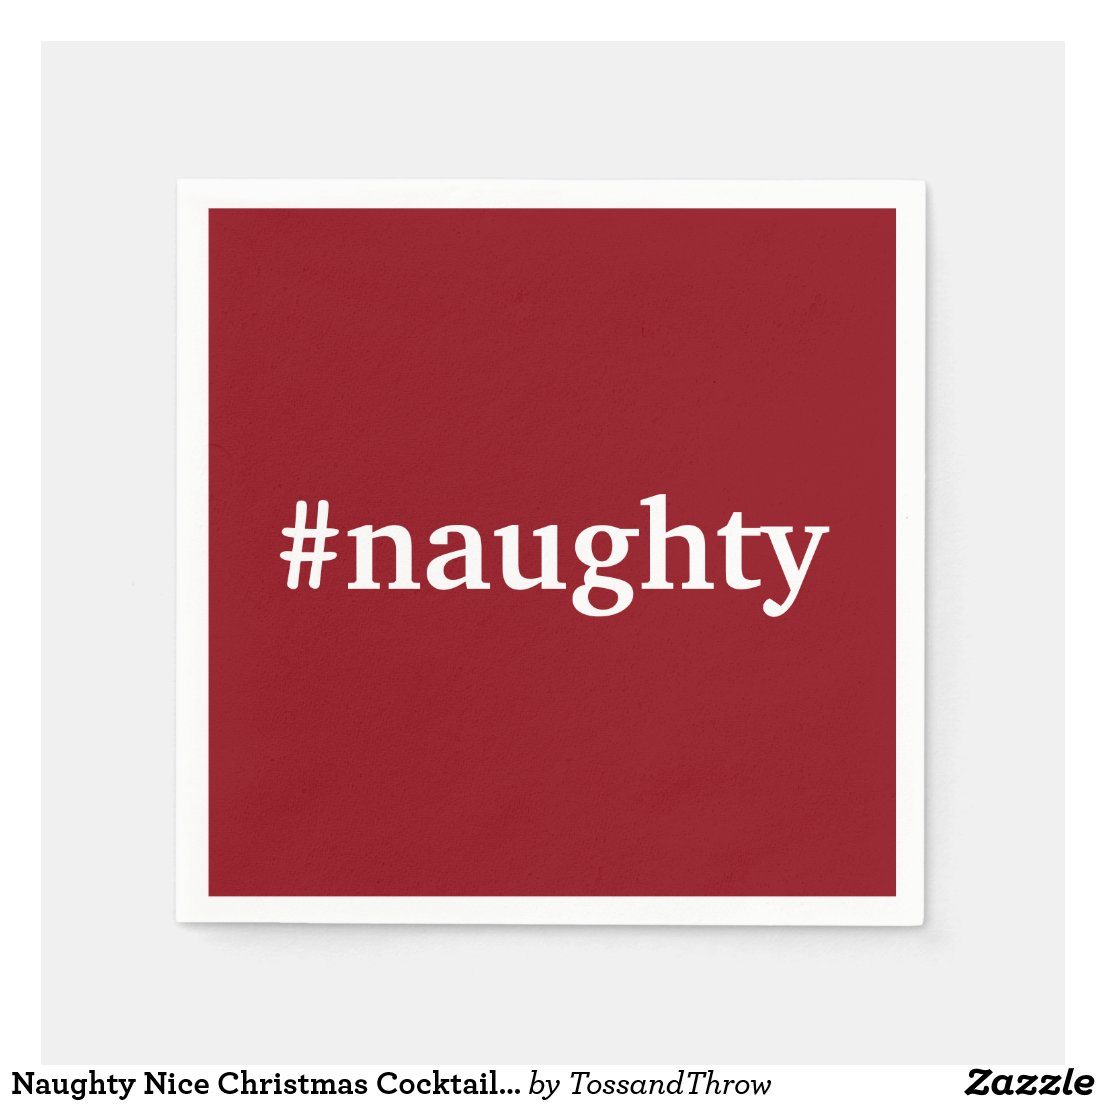 Naughty Nice Christmas Cocktail Pary Napkin